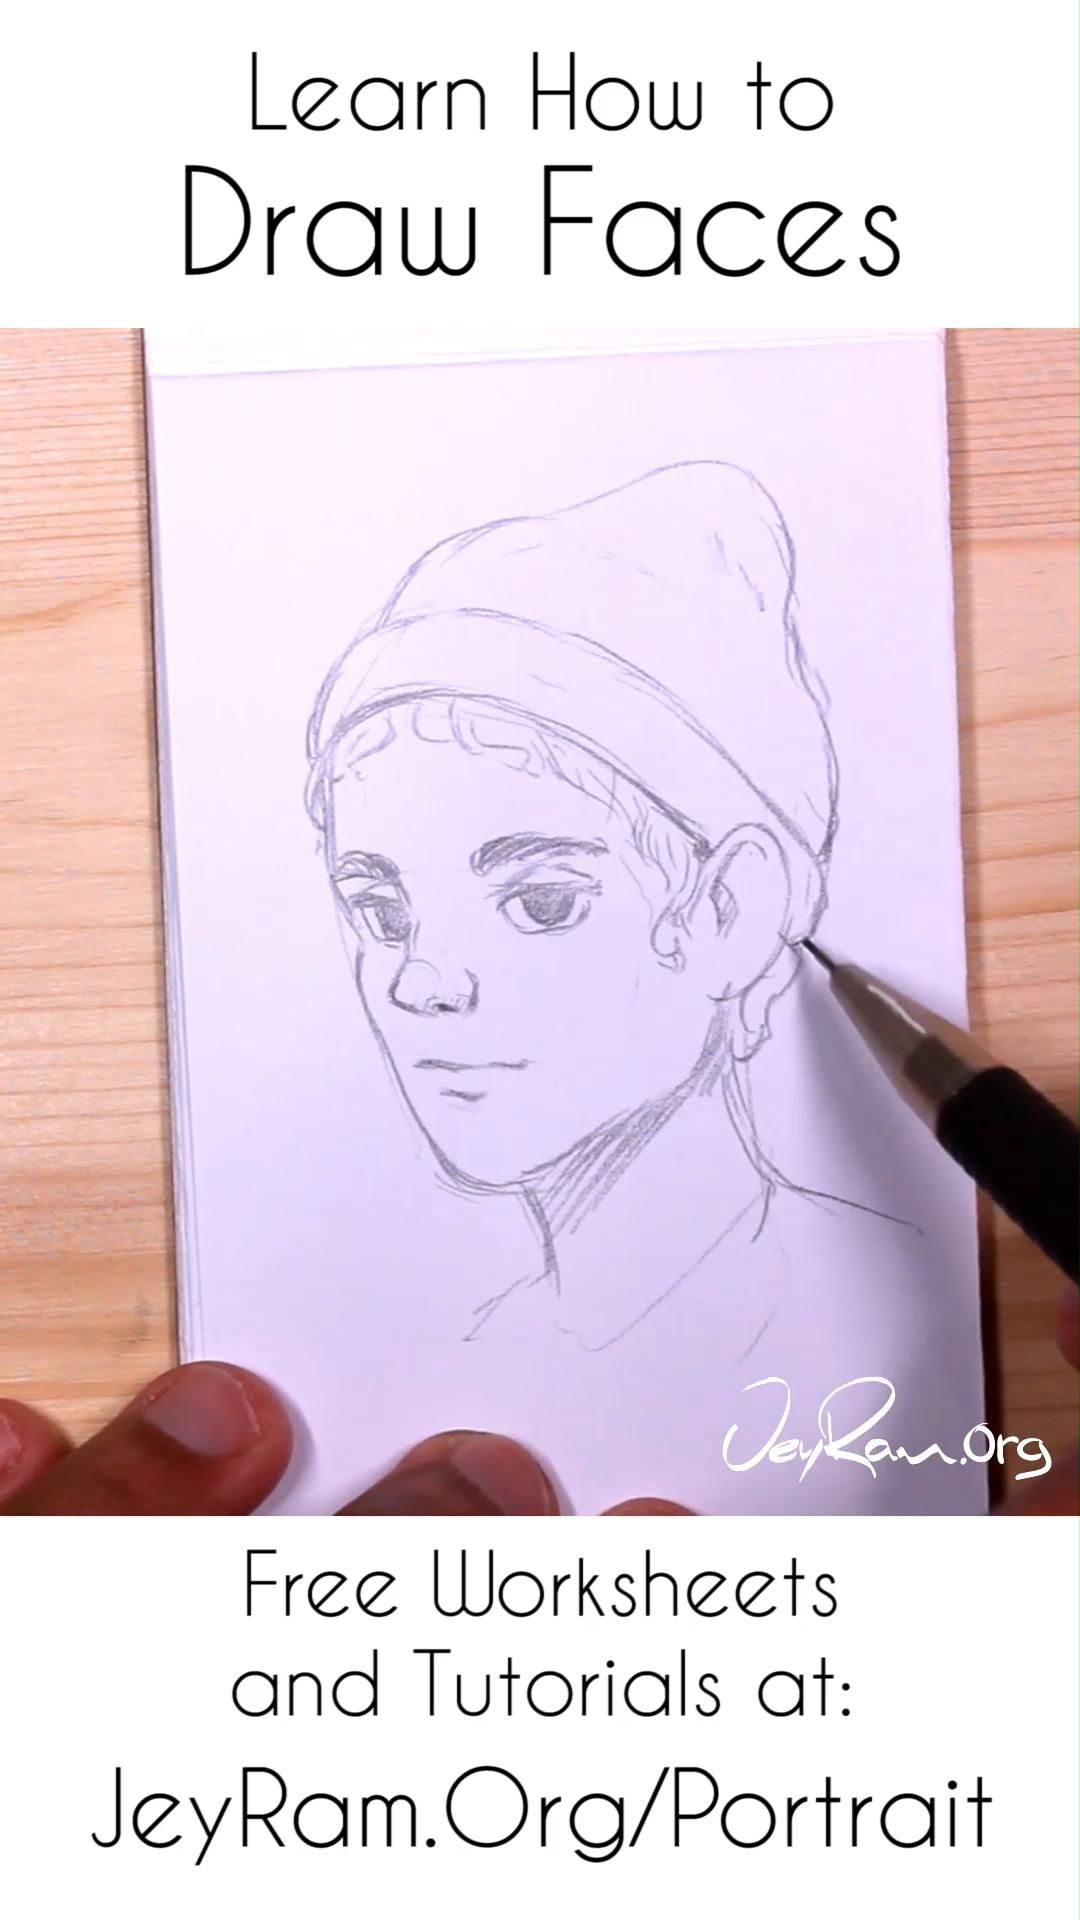 Learn How To Draw Simple Faces Worksheets Tutorials Video In 2020 Drawings Face Drawing Drawing Tutorial